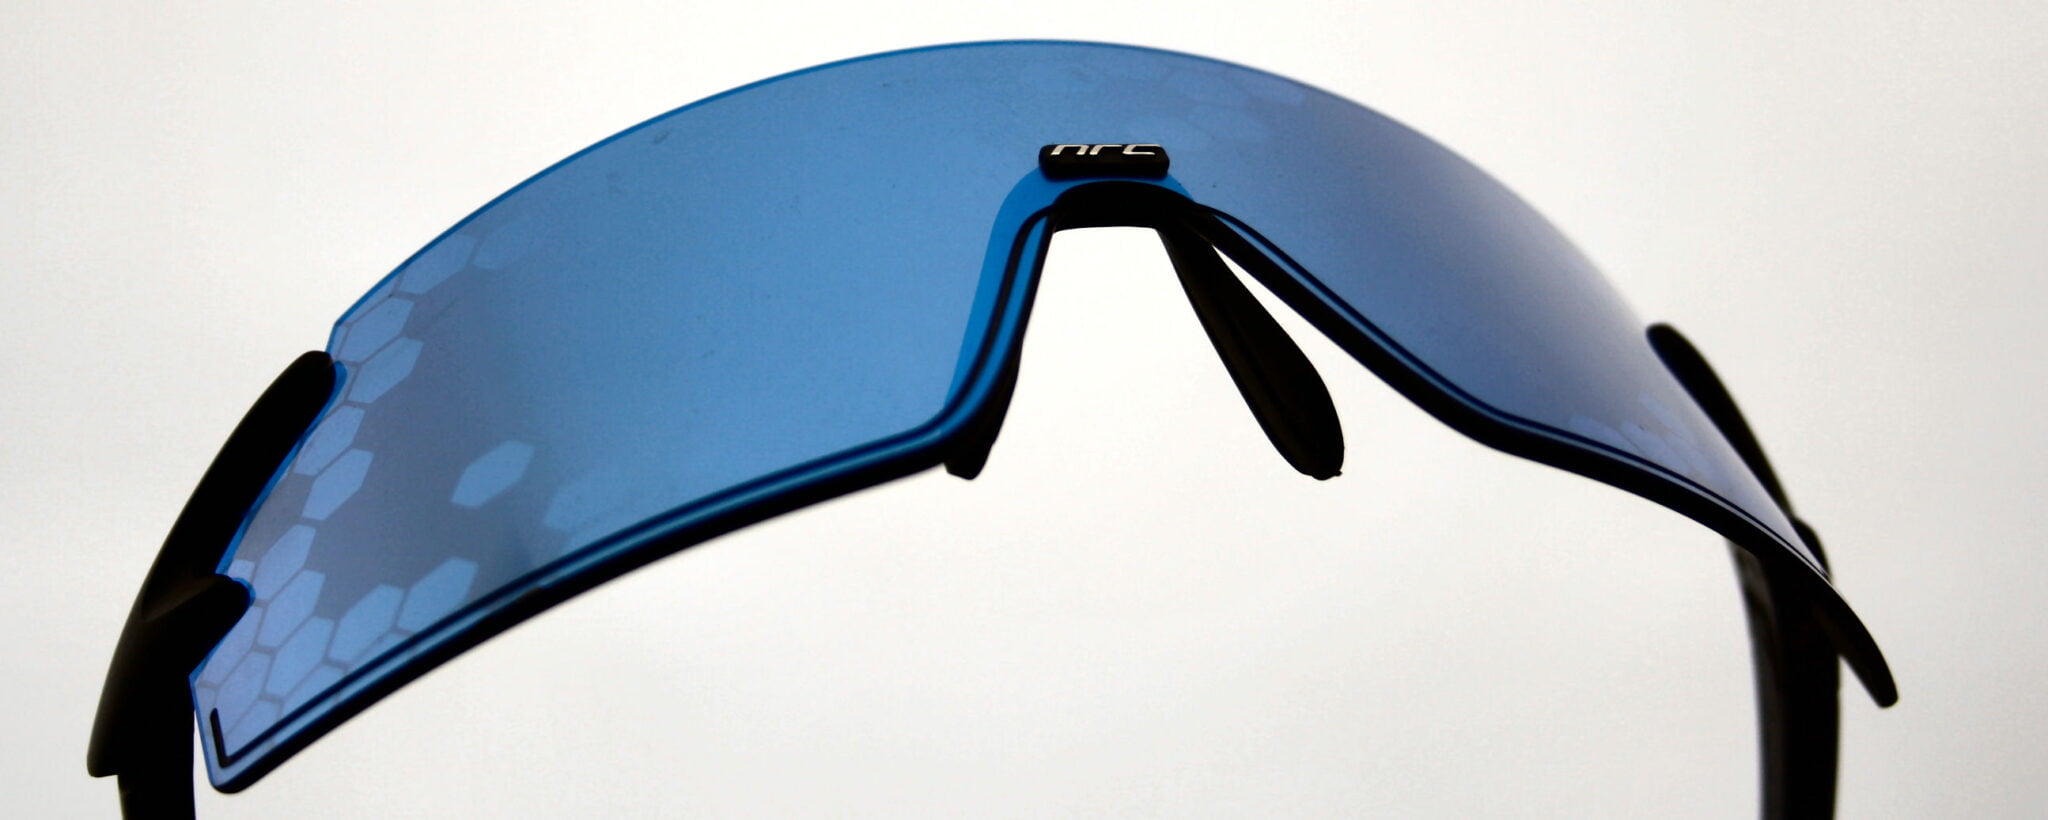 nrc p-ride review specifications nrc eyewear